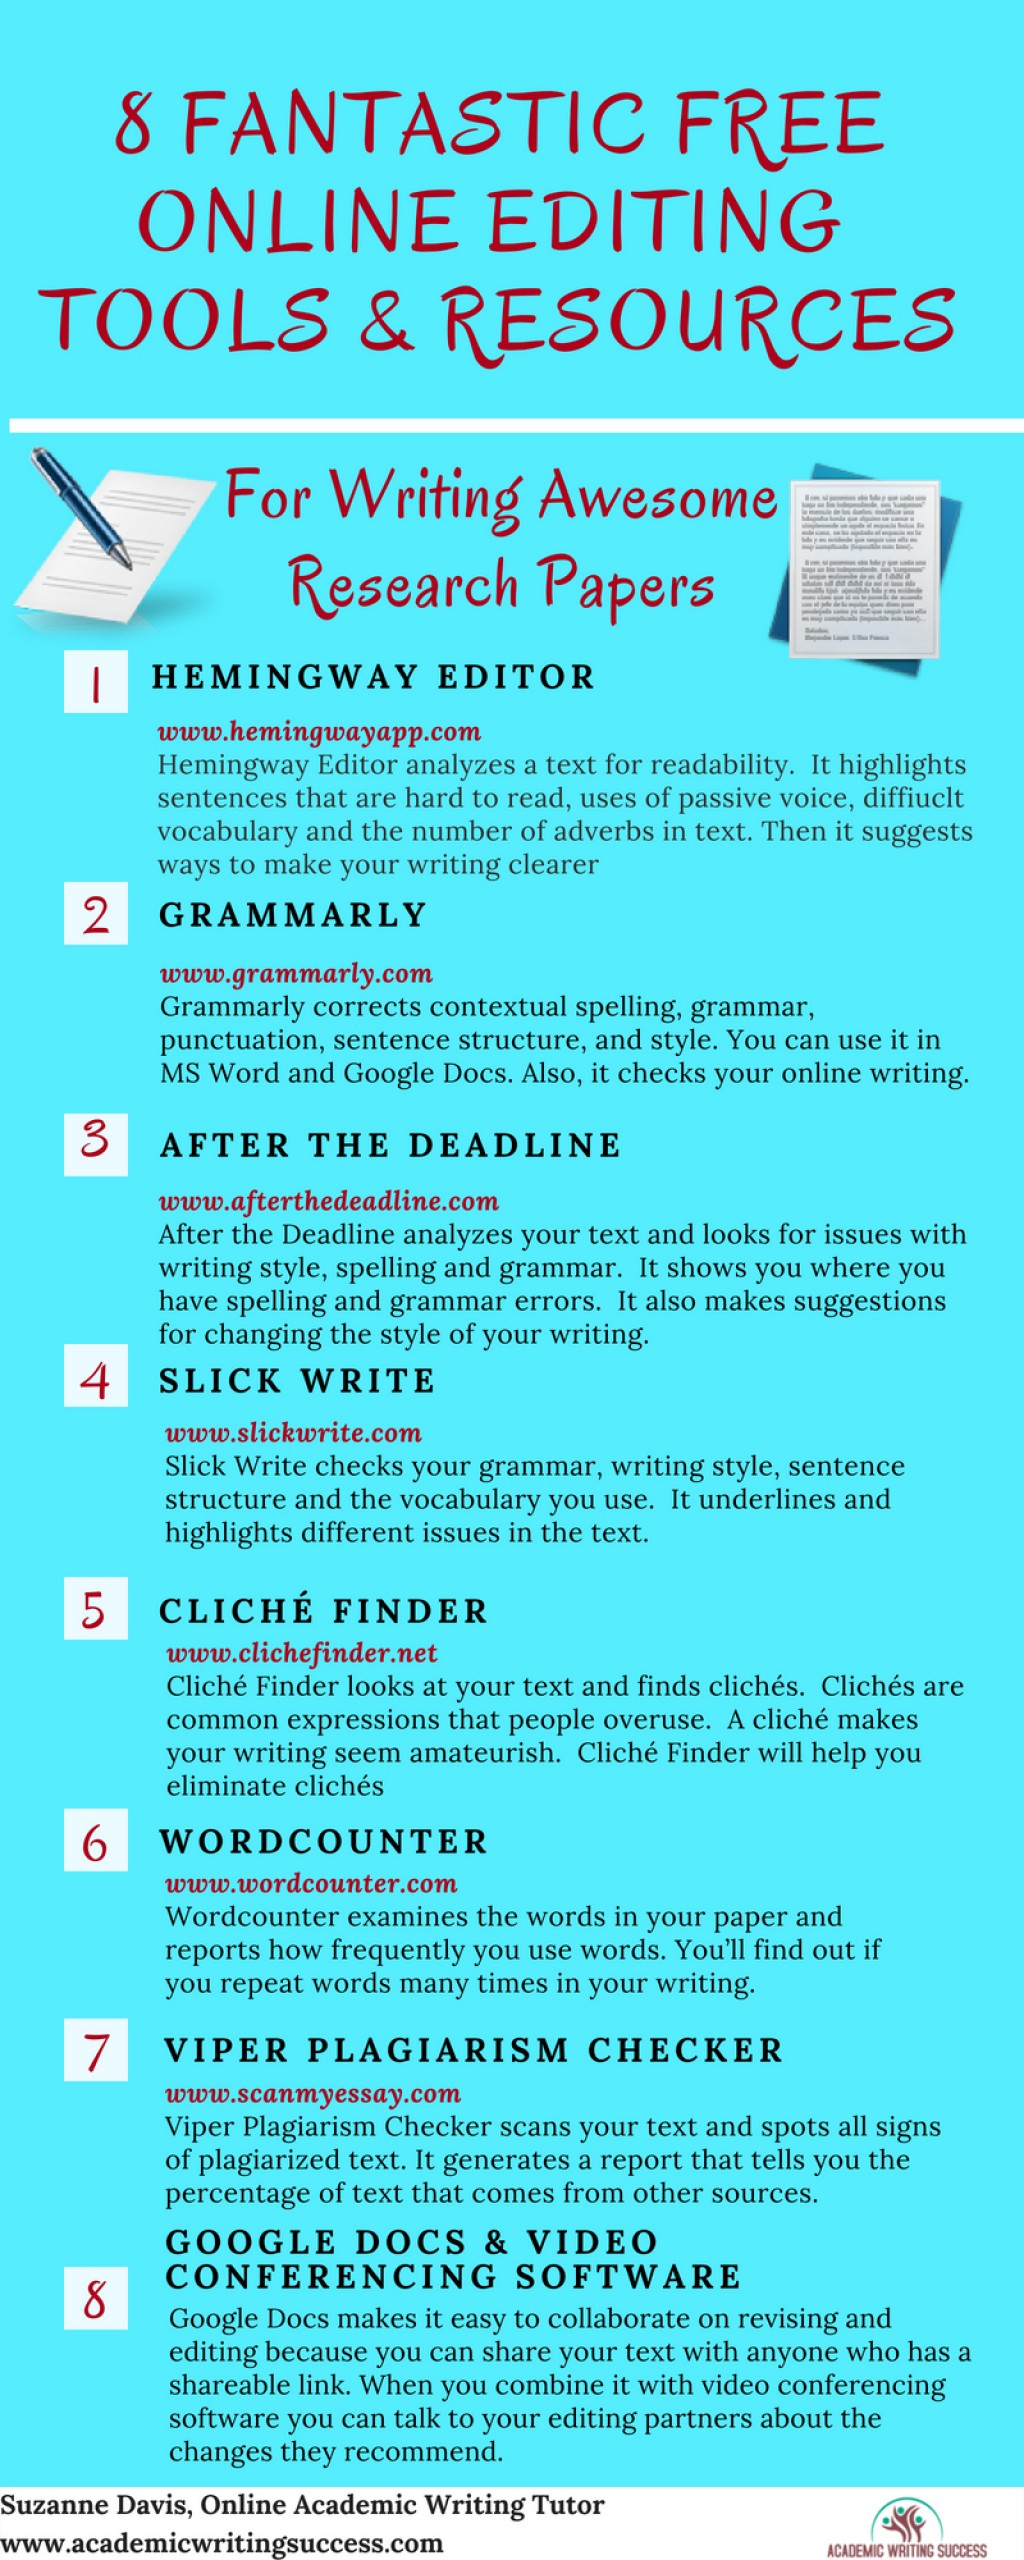 014 Research Paper Online Papers For Free Editing Fearsome Plagiarism Checker Students Library Large